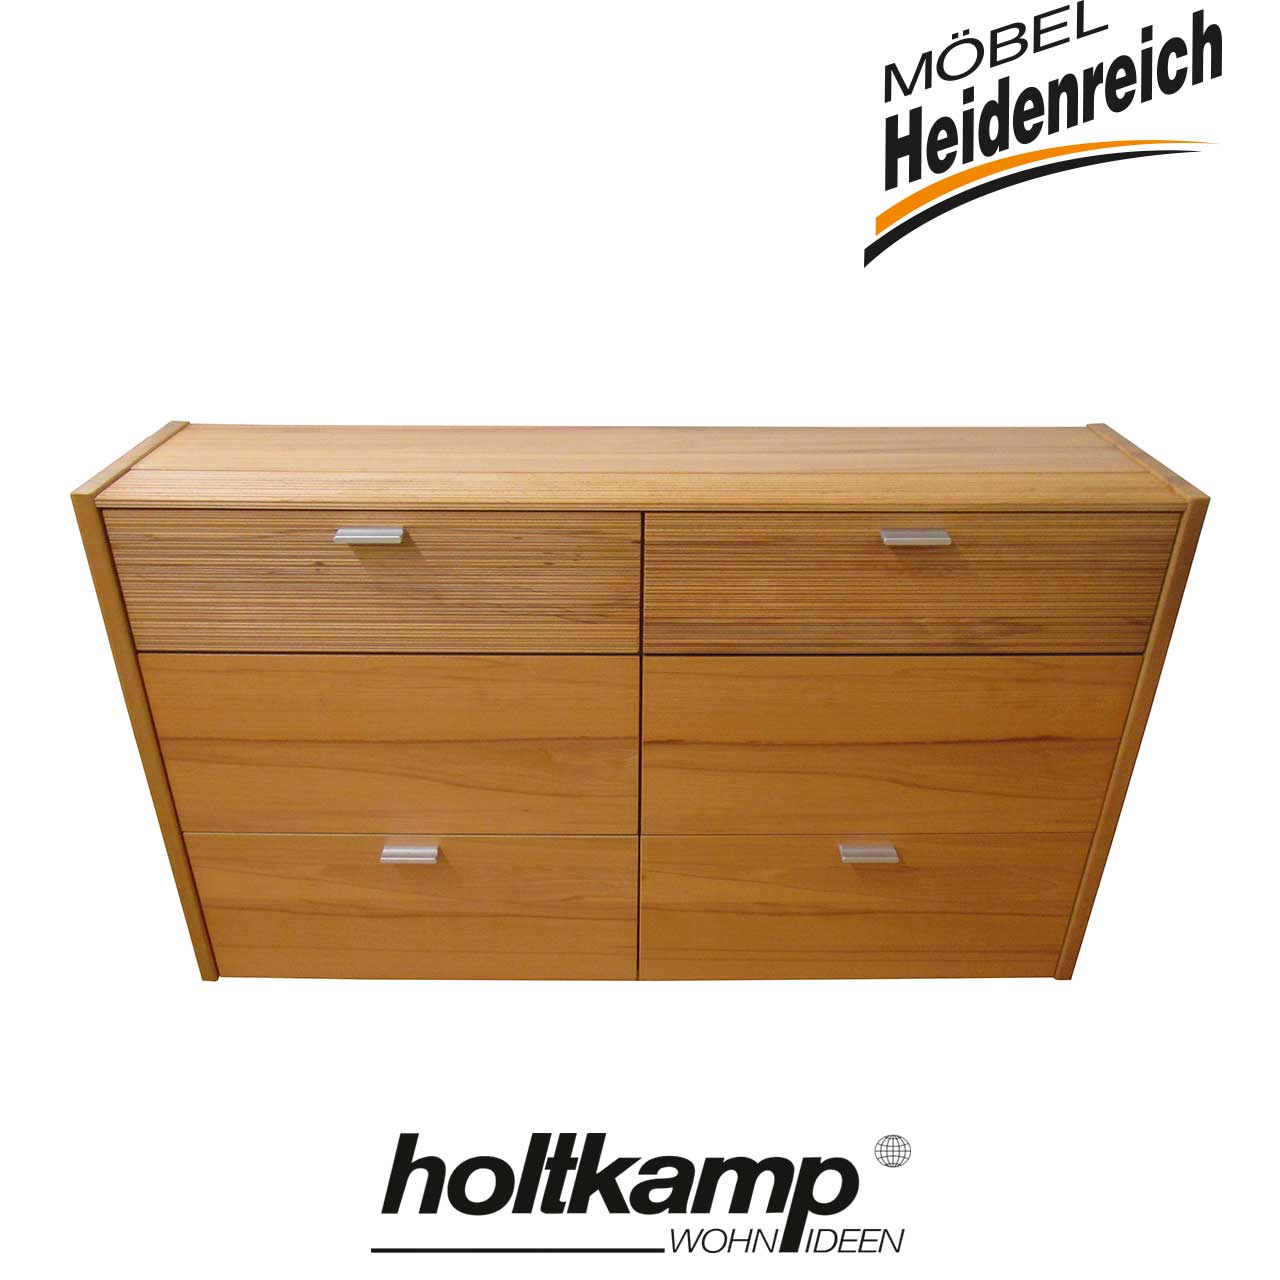 holtkamp schuhschrank estada schuhschr nke sale m bel heidenreich. Black Bedroom Furniture Sets. Home Design Ideas